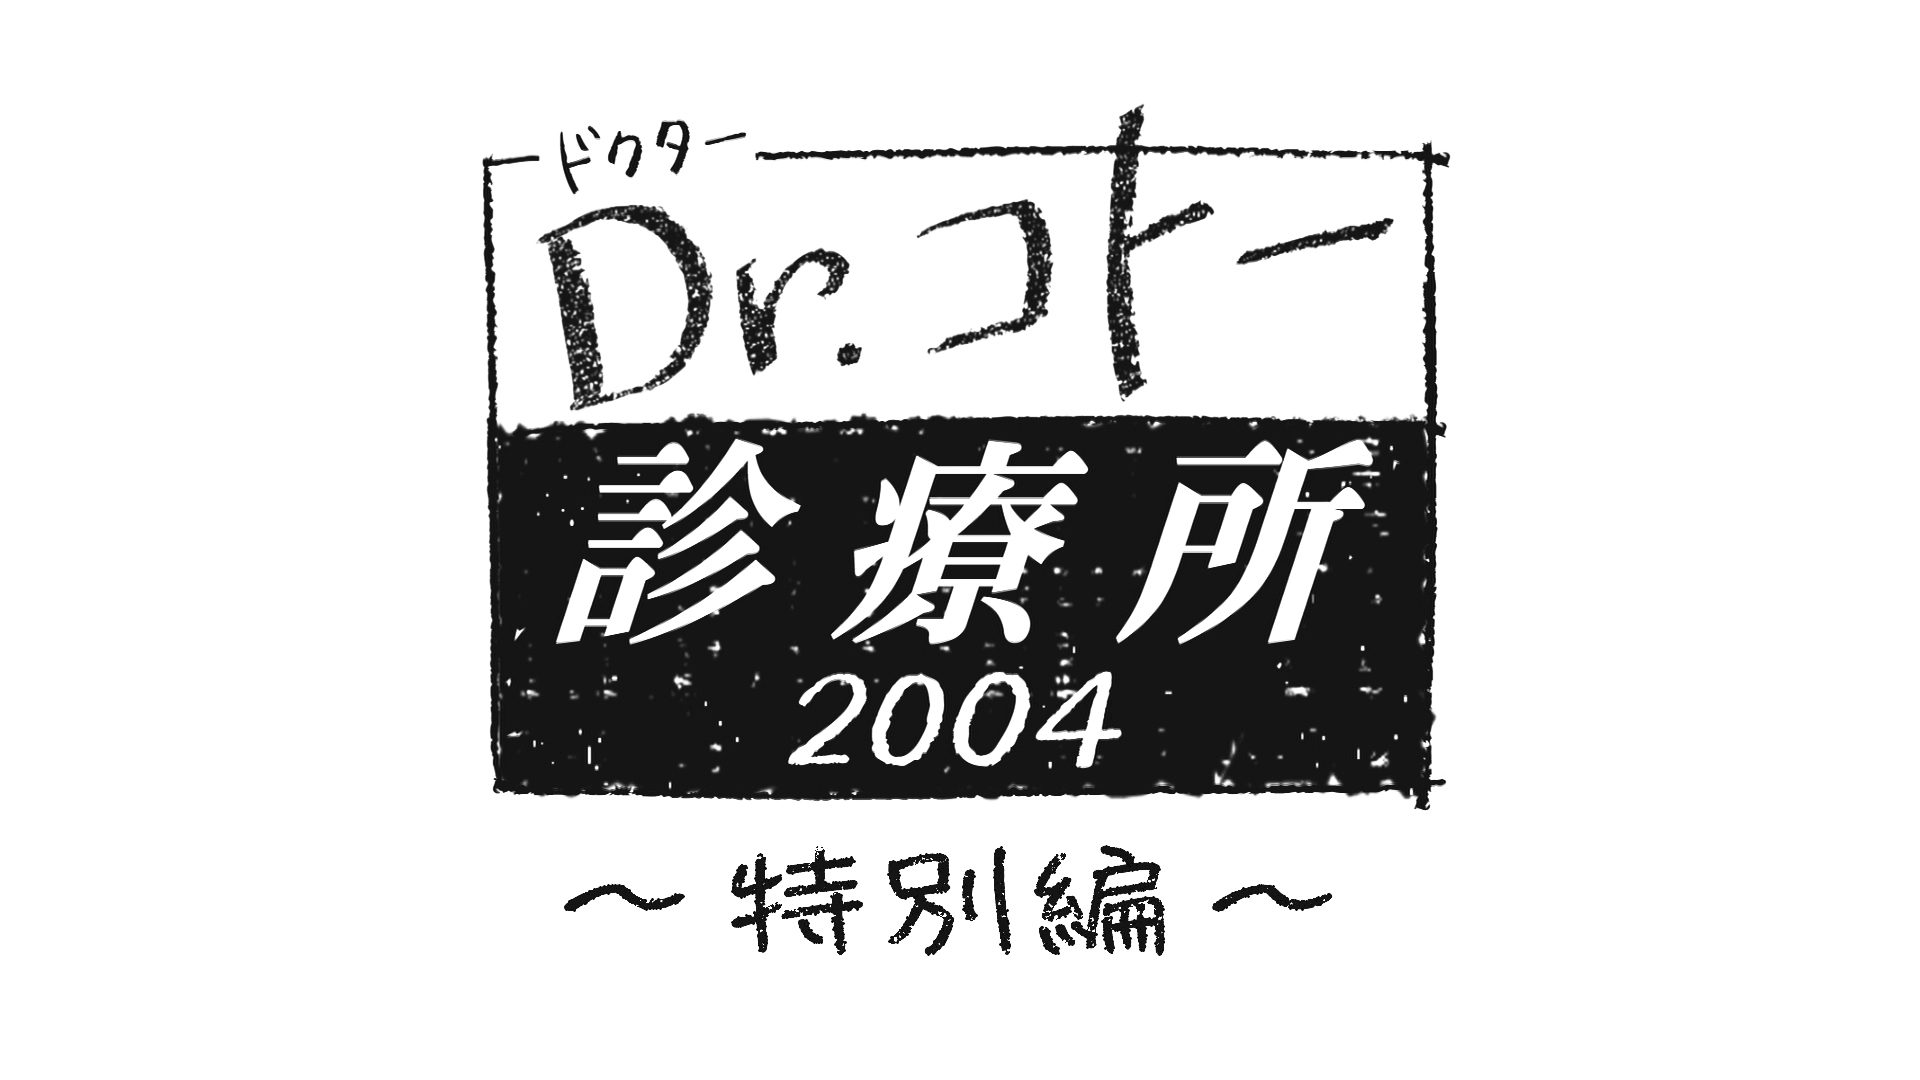 『Dr.コトー診療所2004特別編』のロゴ